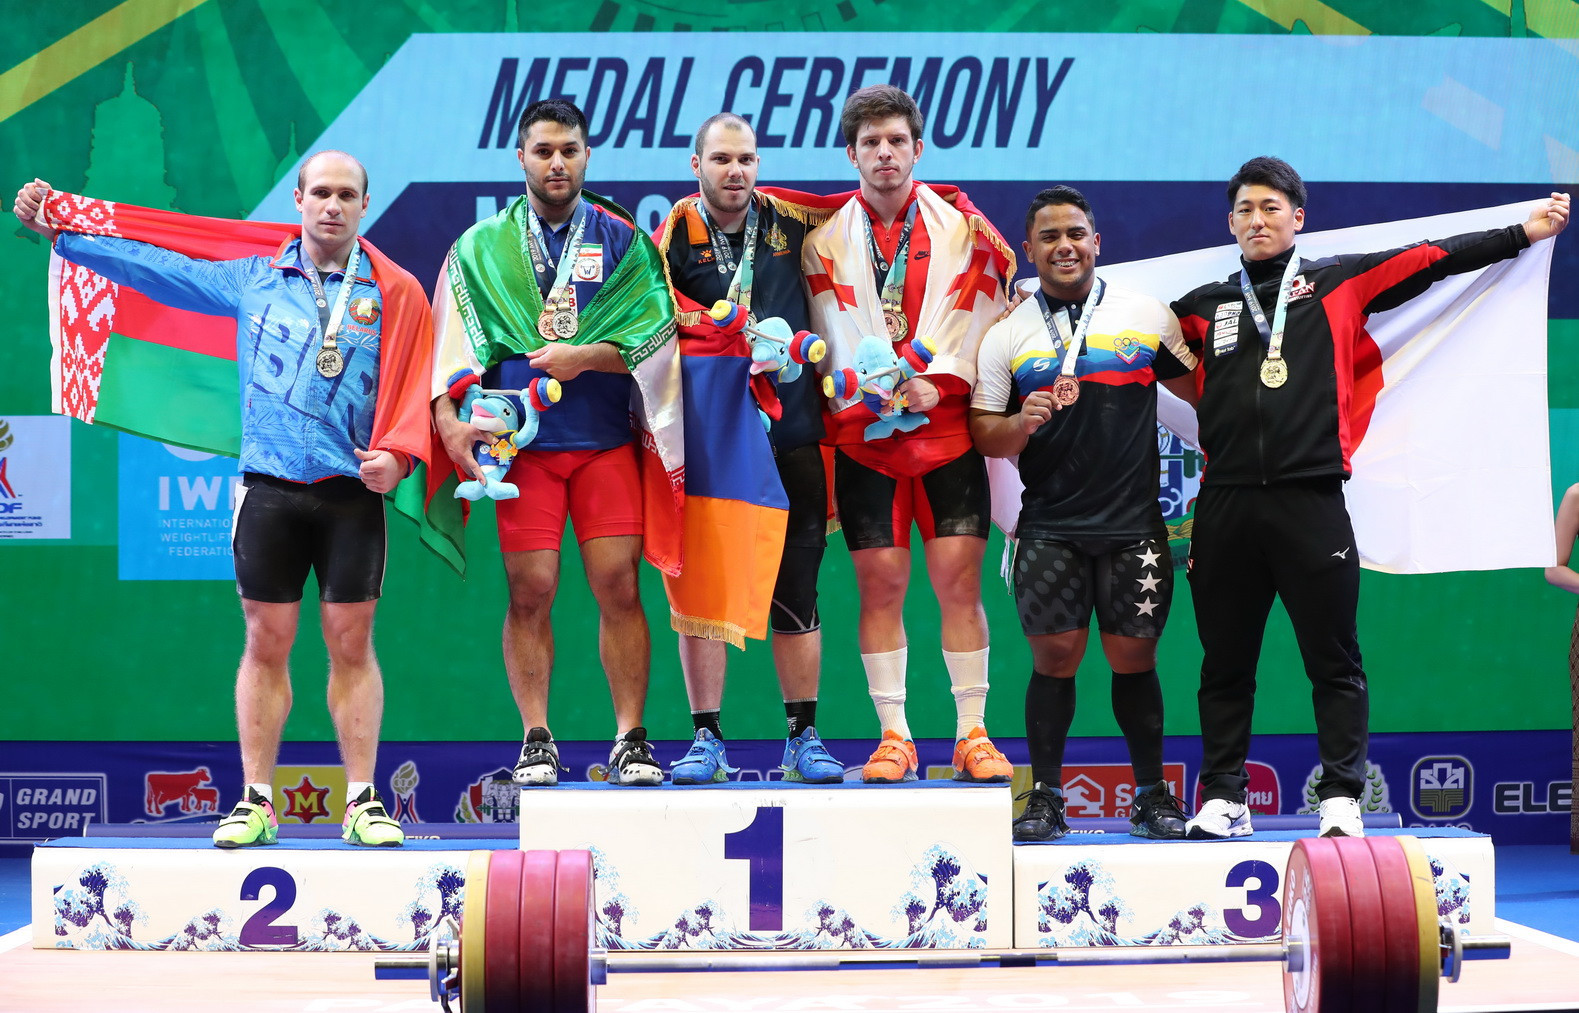 insidethegames is reporting LIVE from the IWF World Weightlifting Championships in Pattaya